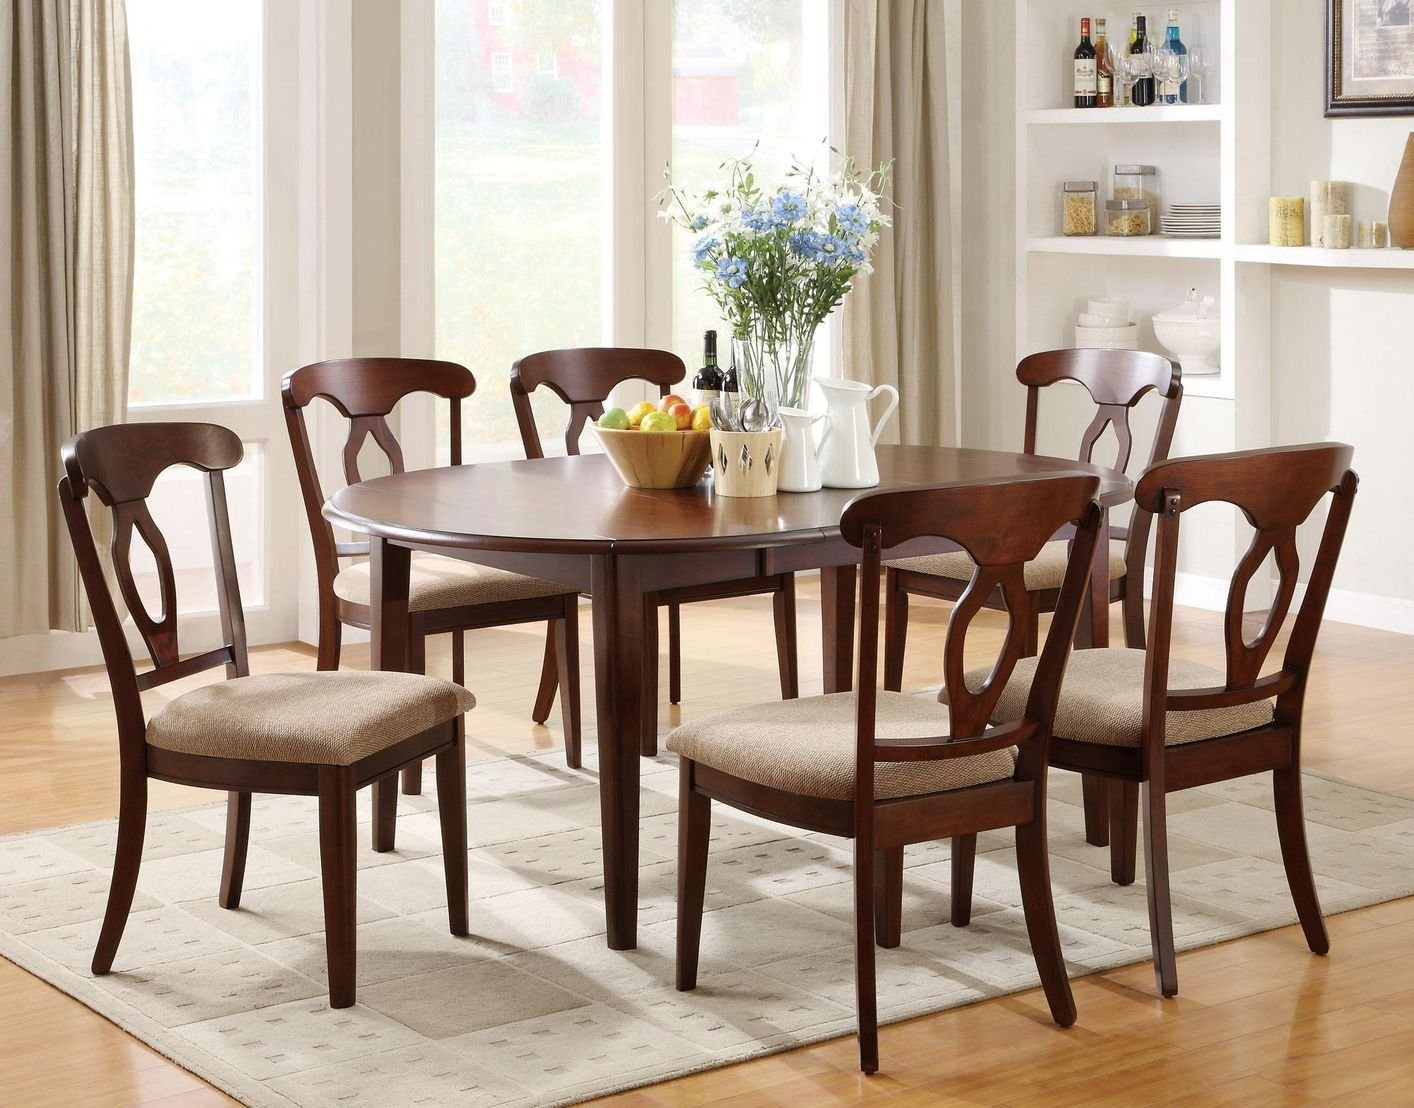 Accommodate An Array Of Dinner Party Sizes With This Versatile Simple Coaster Dining Room Furniture Decorating Design